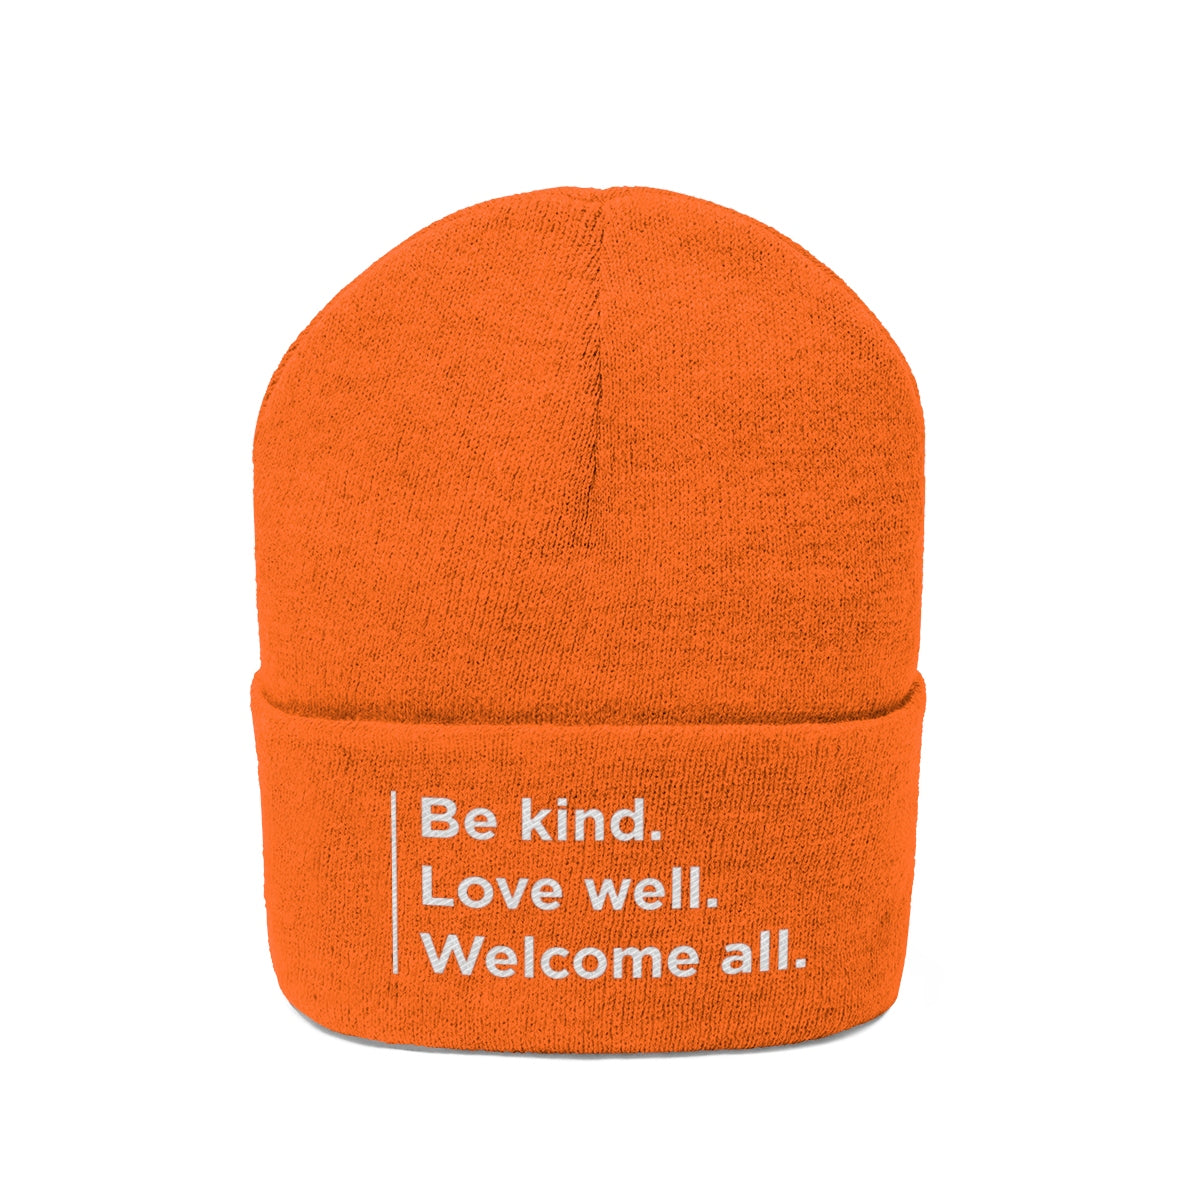 """Welcome all"" Unisex Knit Beanie"